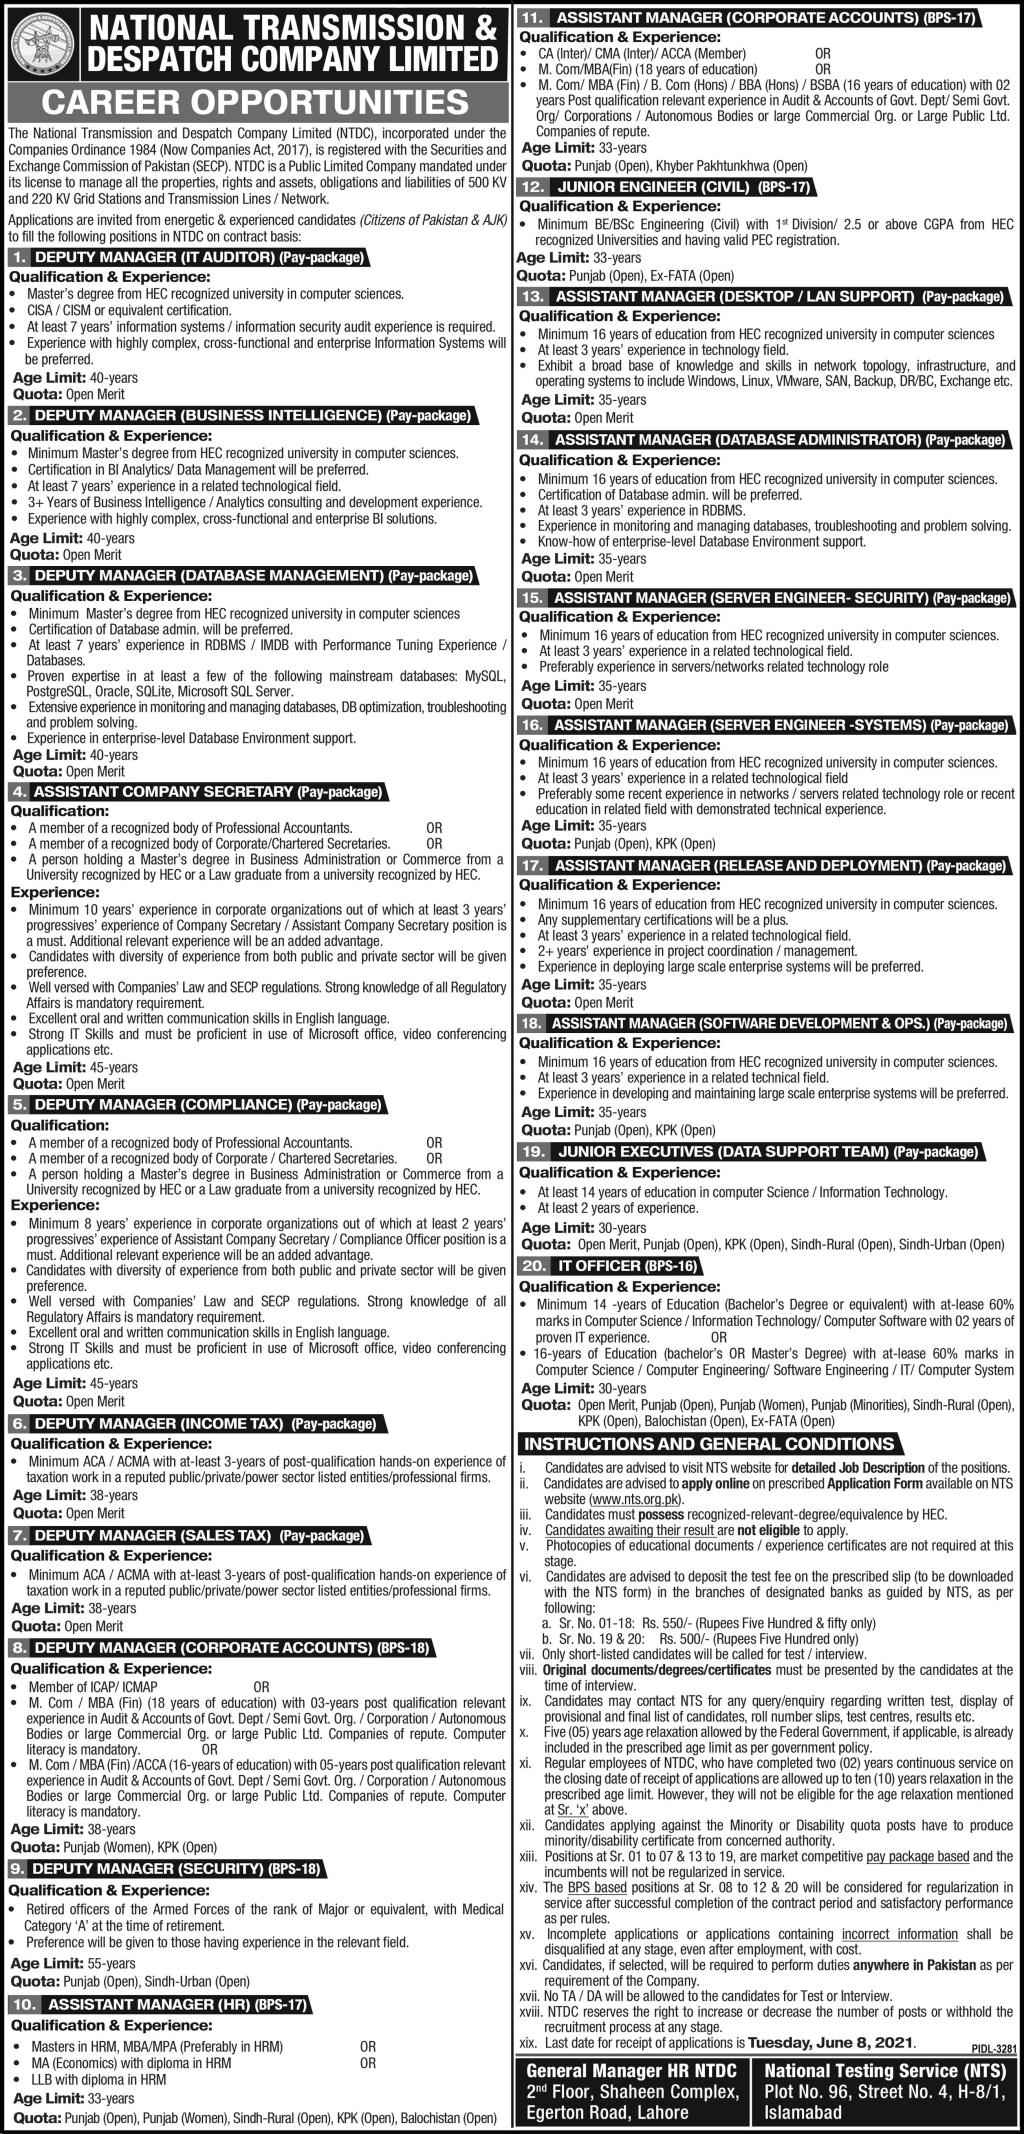 National Transmission & Dispatch Company Jobs 2021 via NTS For Assistant Manager Server Engineer Security, Junior Executives Data Support Team & more